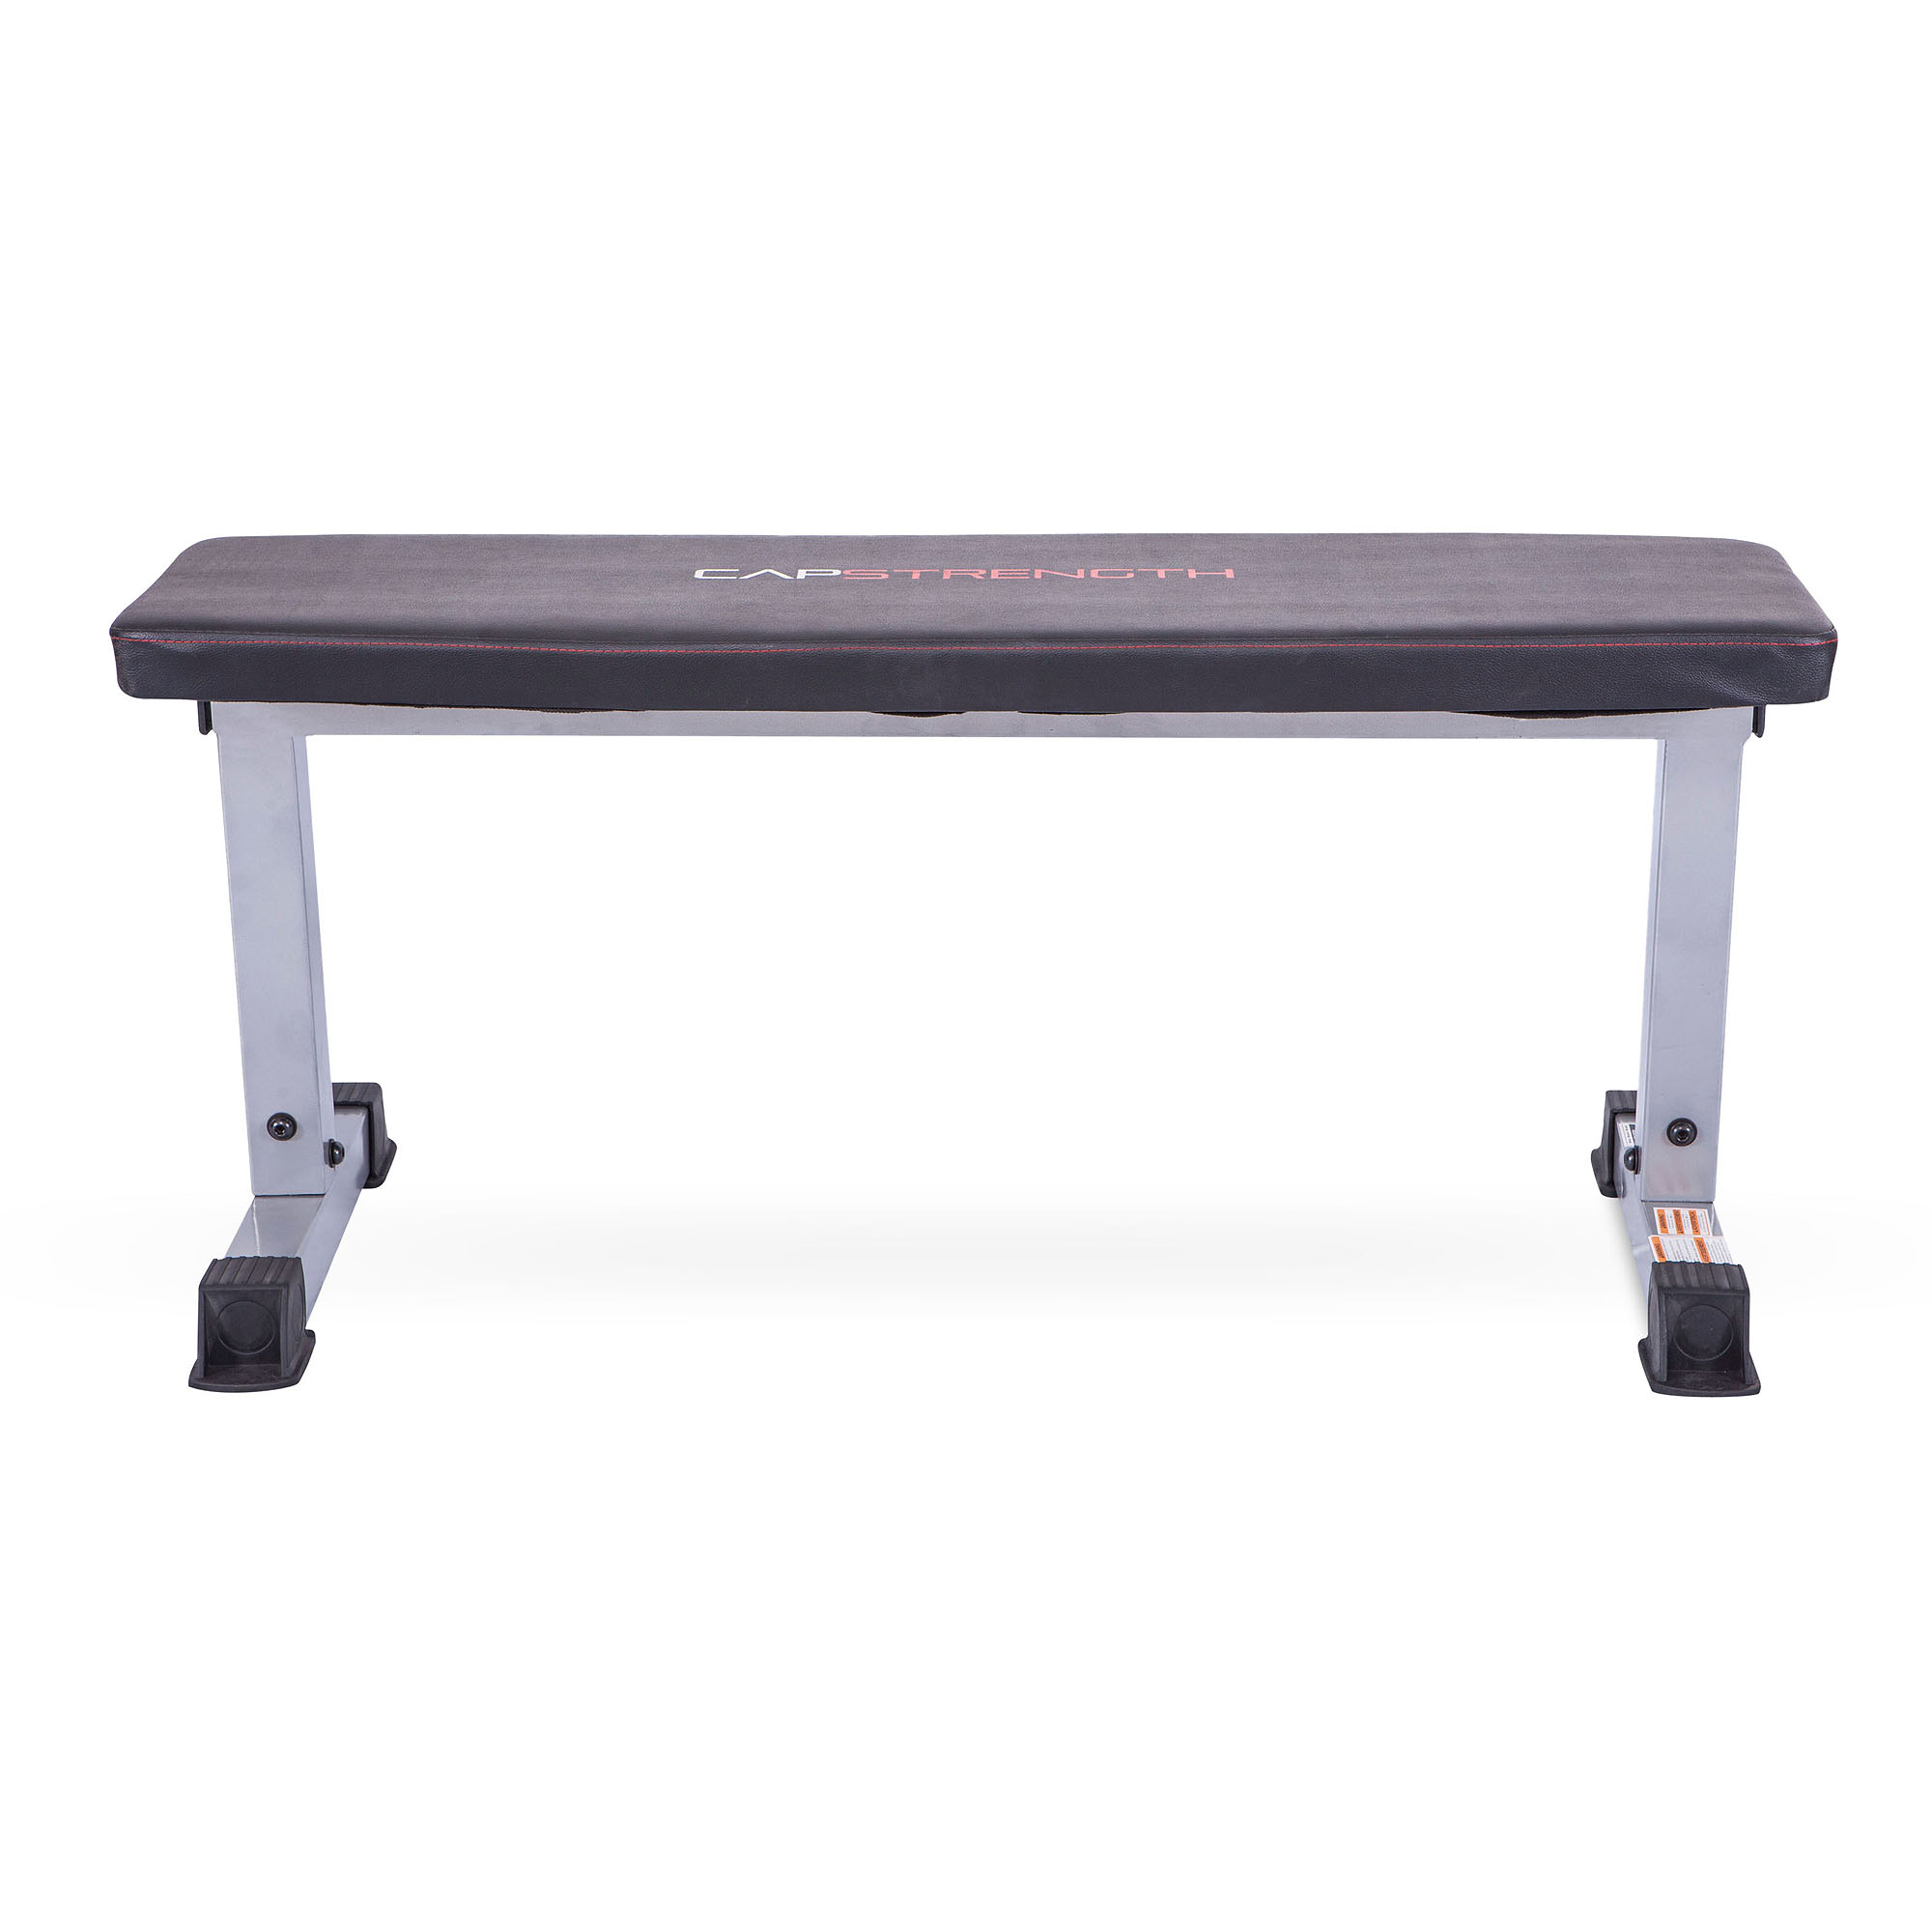 Fitness Flat Bench Weight Lifting Exercise Compact Home Gym Workout Training 702556301555 Ebay